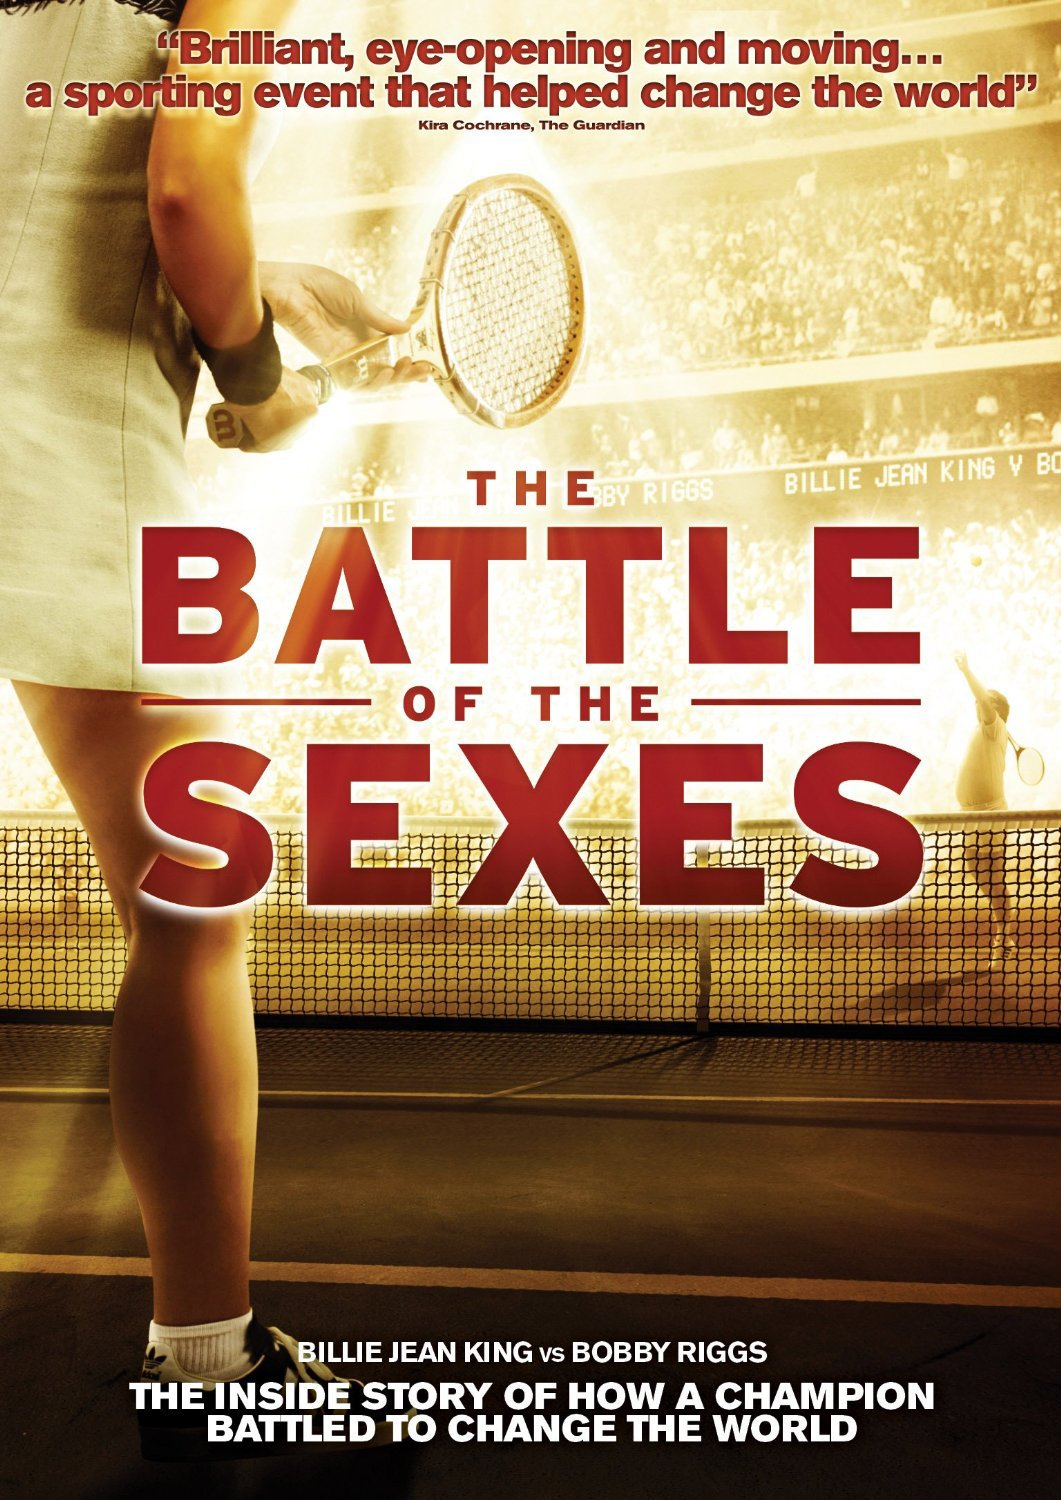 The battle of sexes movie